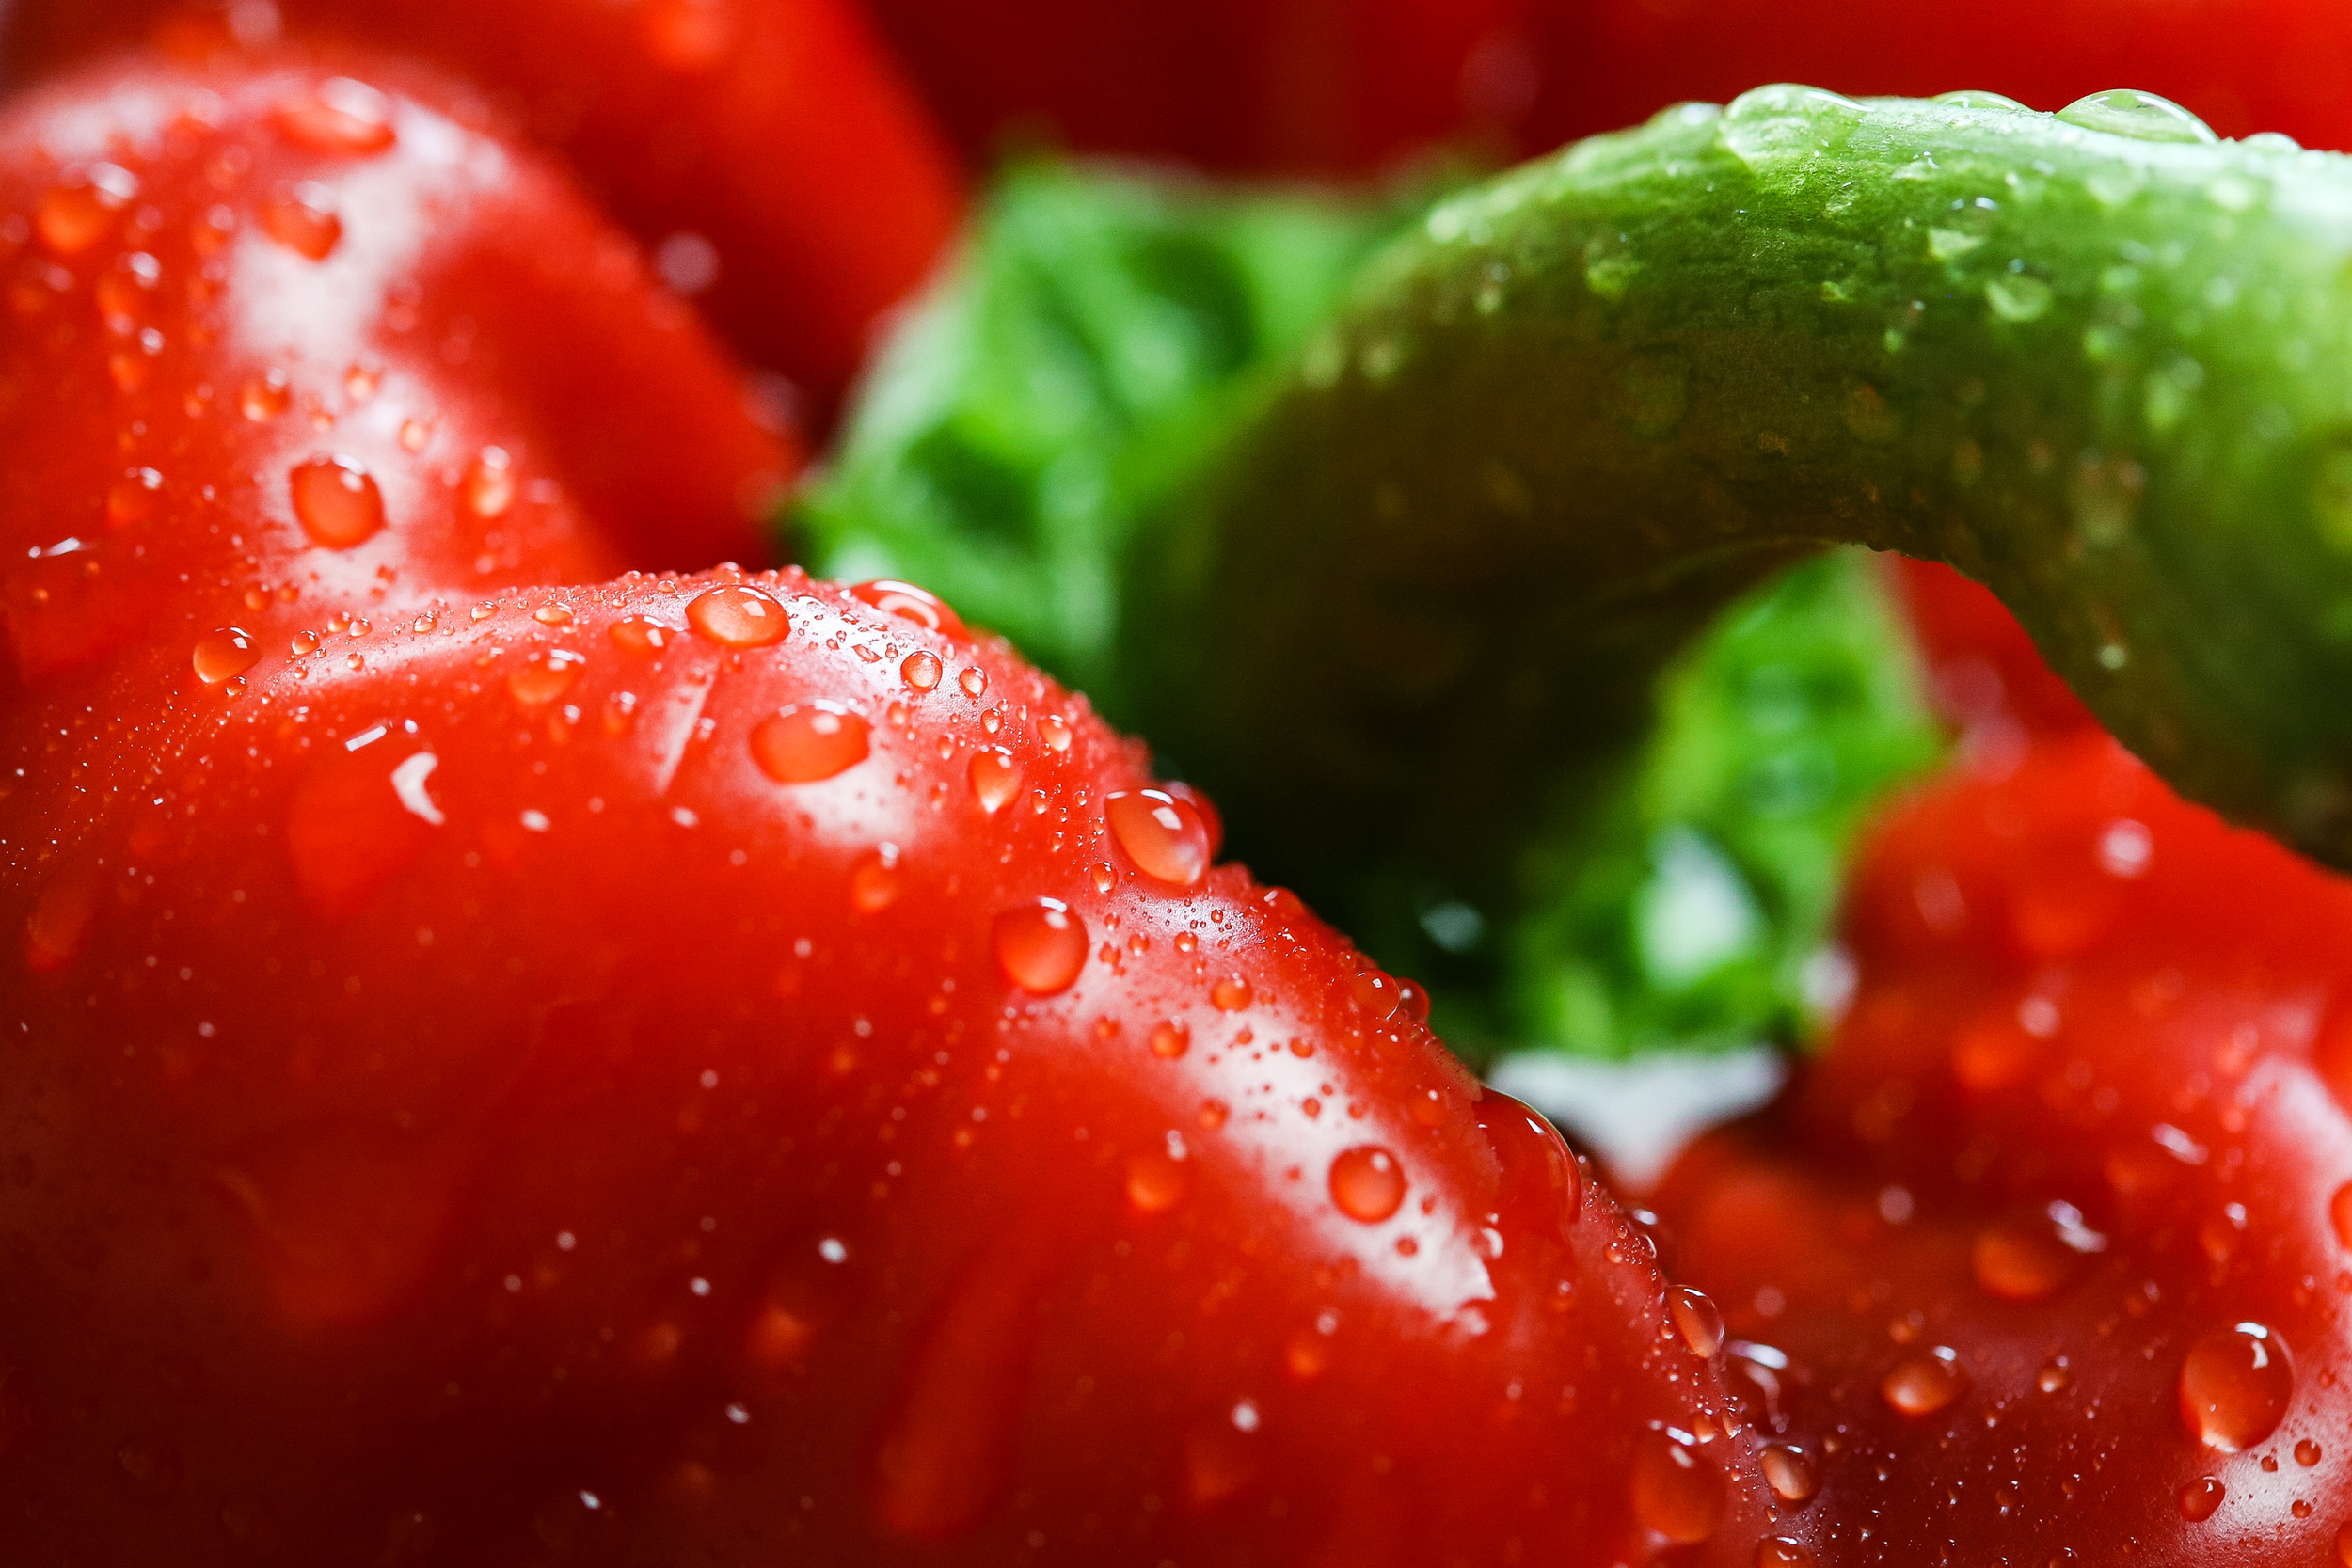 red-paprika-with-drops-close-up-picjumbo-com.jpg